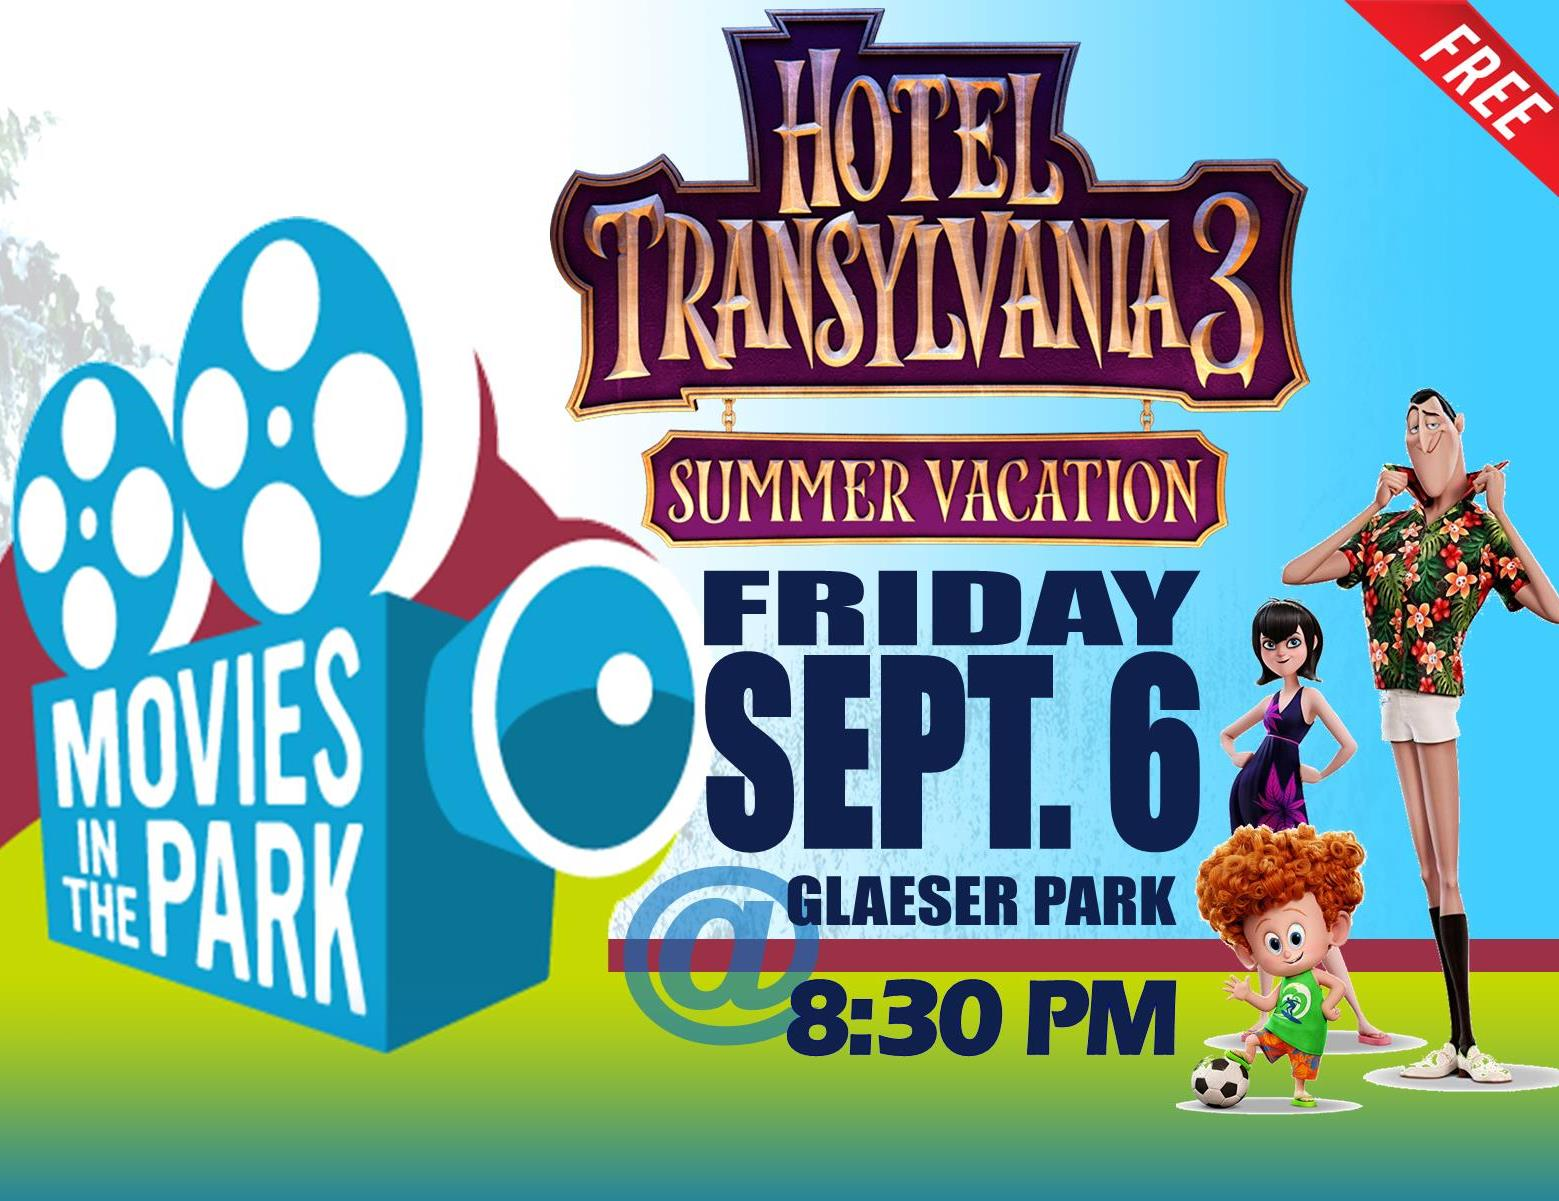 Movies in the Park - Hotel Transylvania 3 - Sept 2019 sq